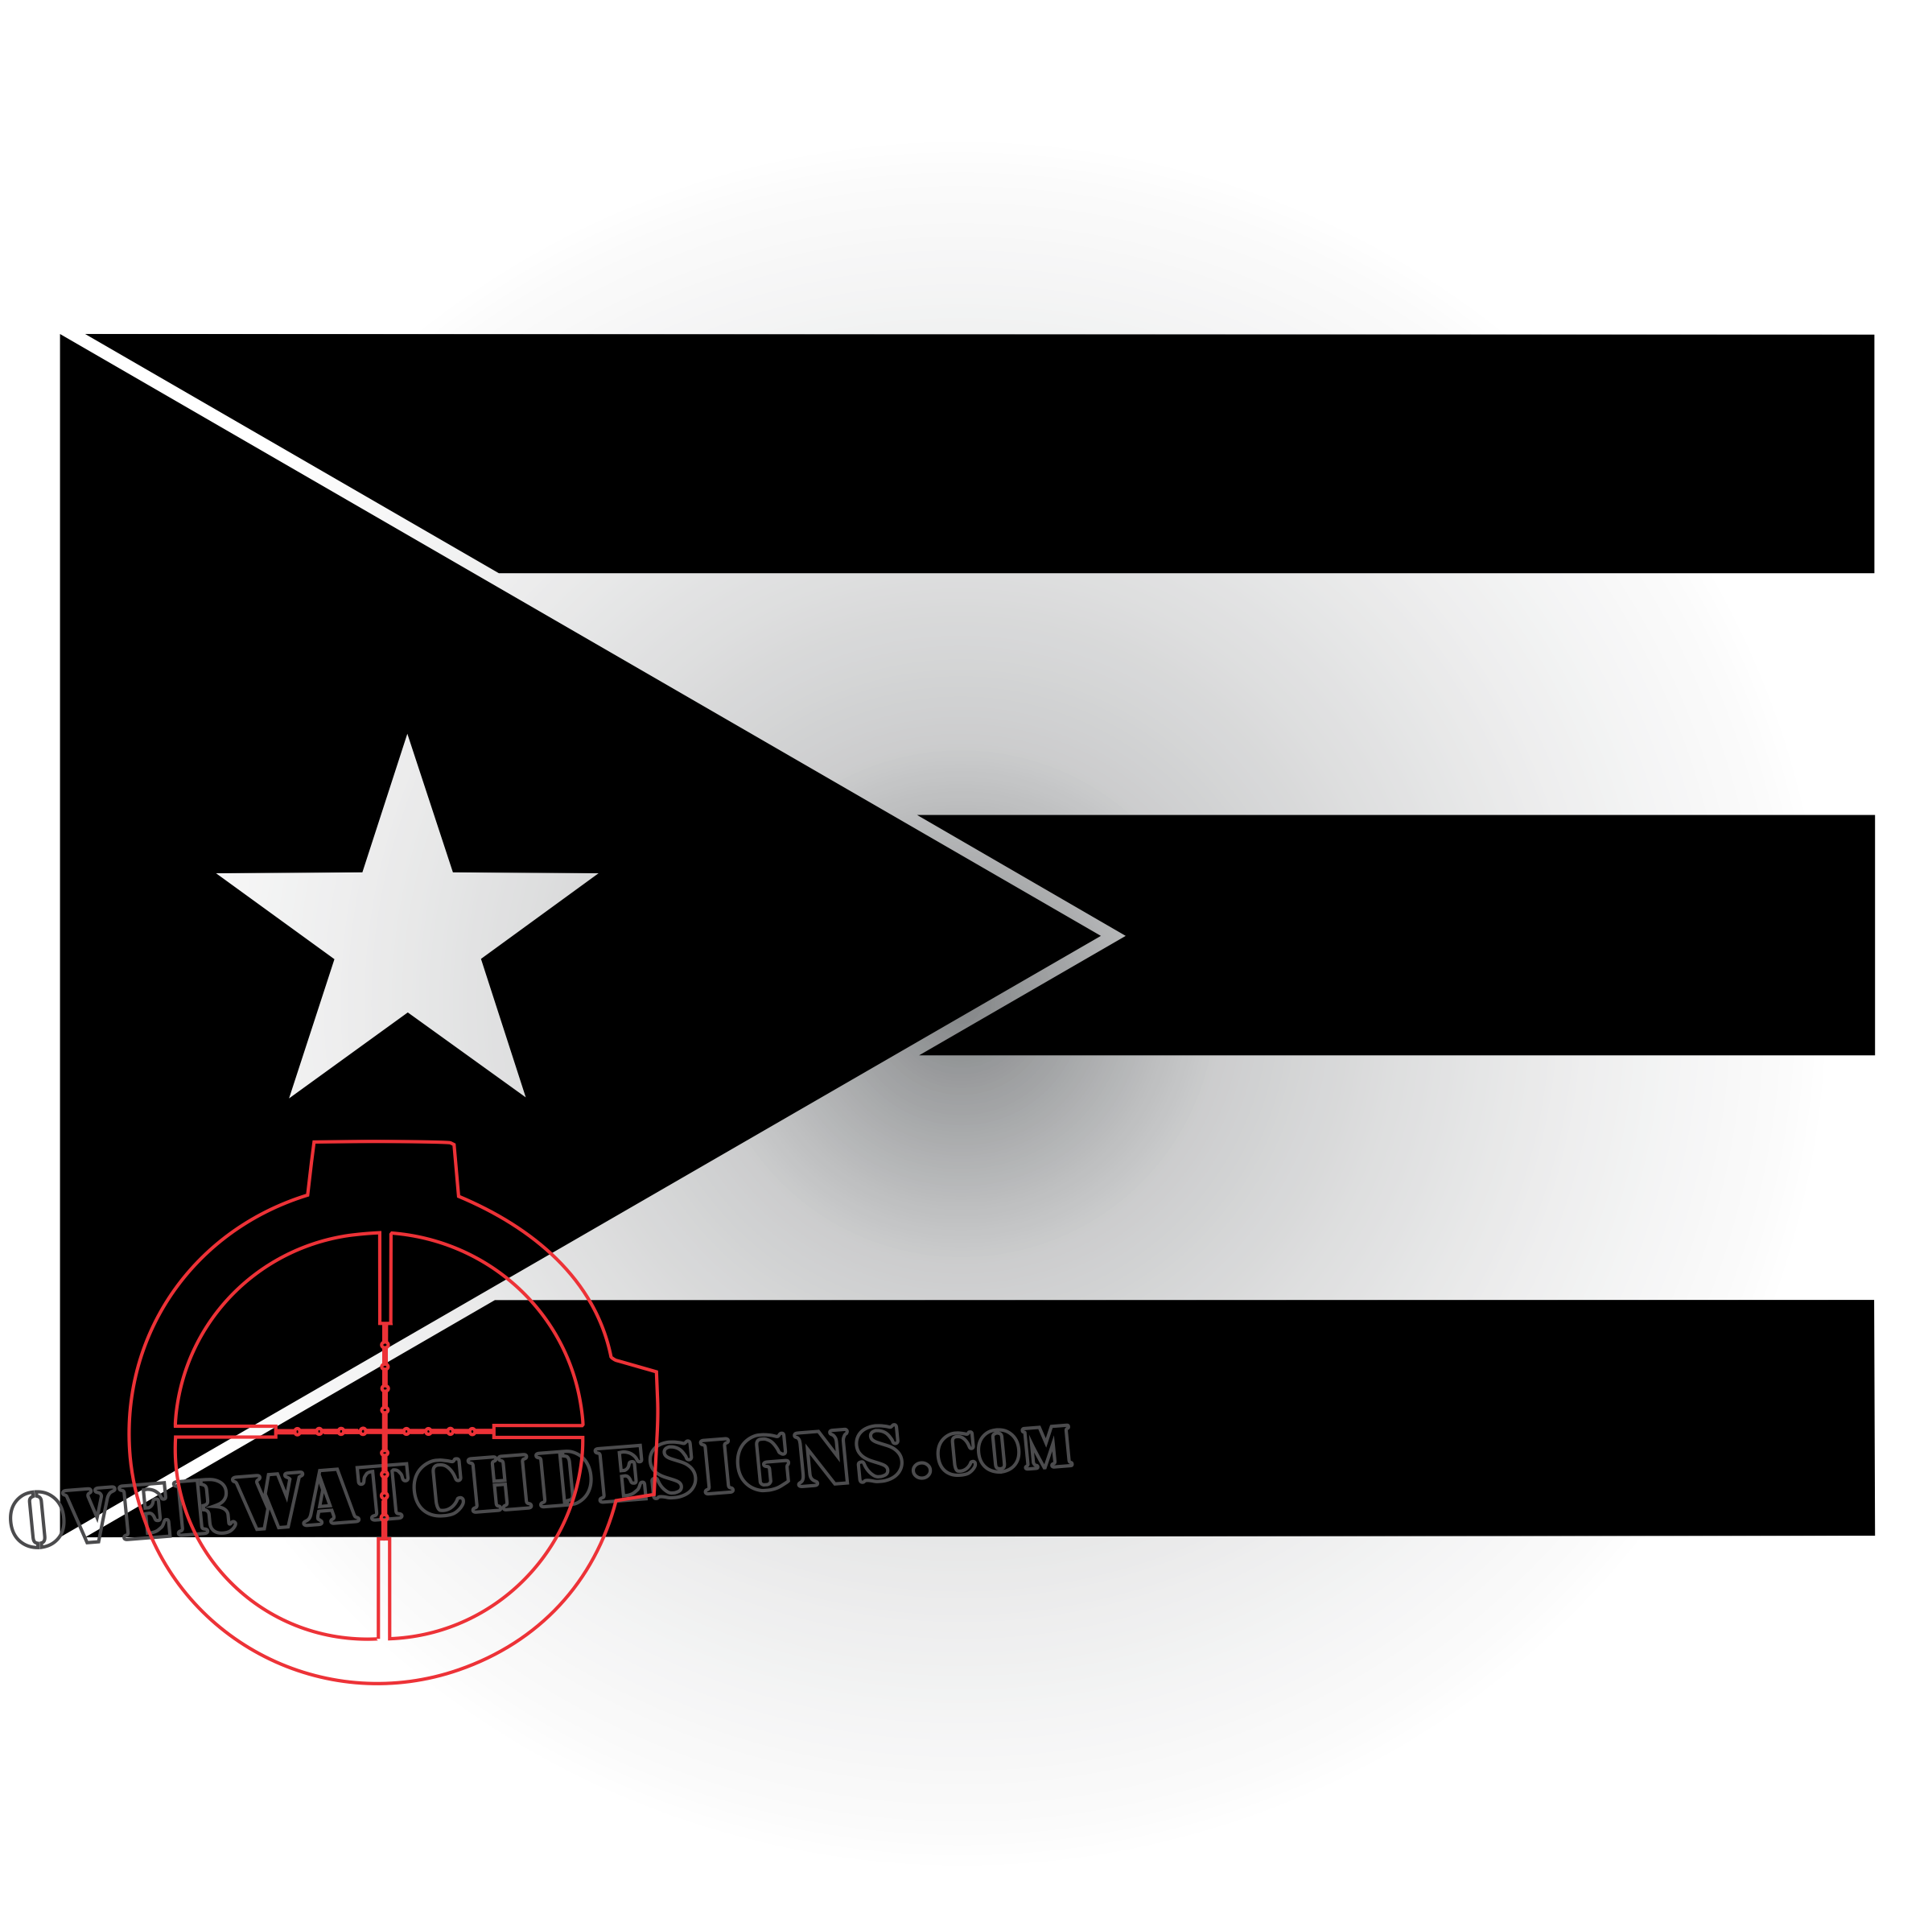 puerto rico flag decal overwatch designs